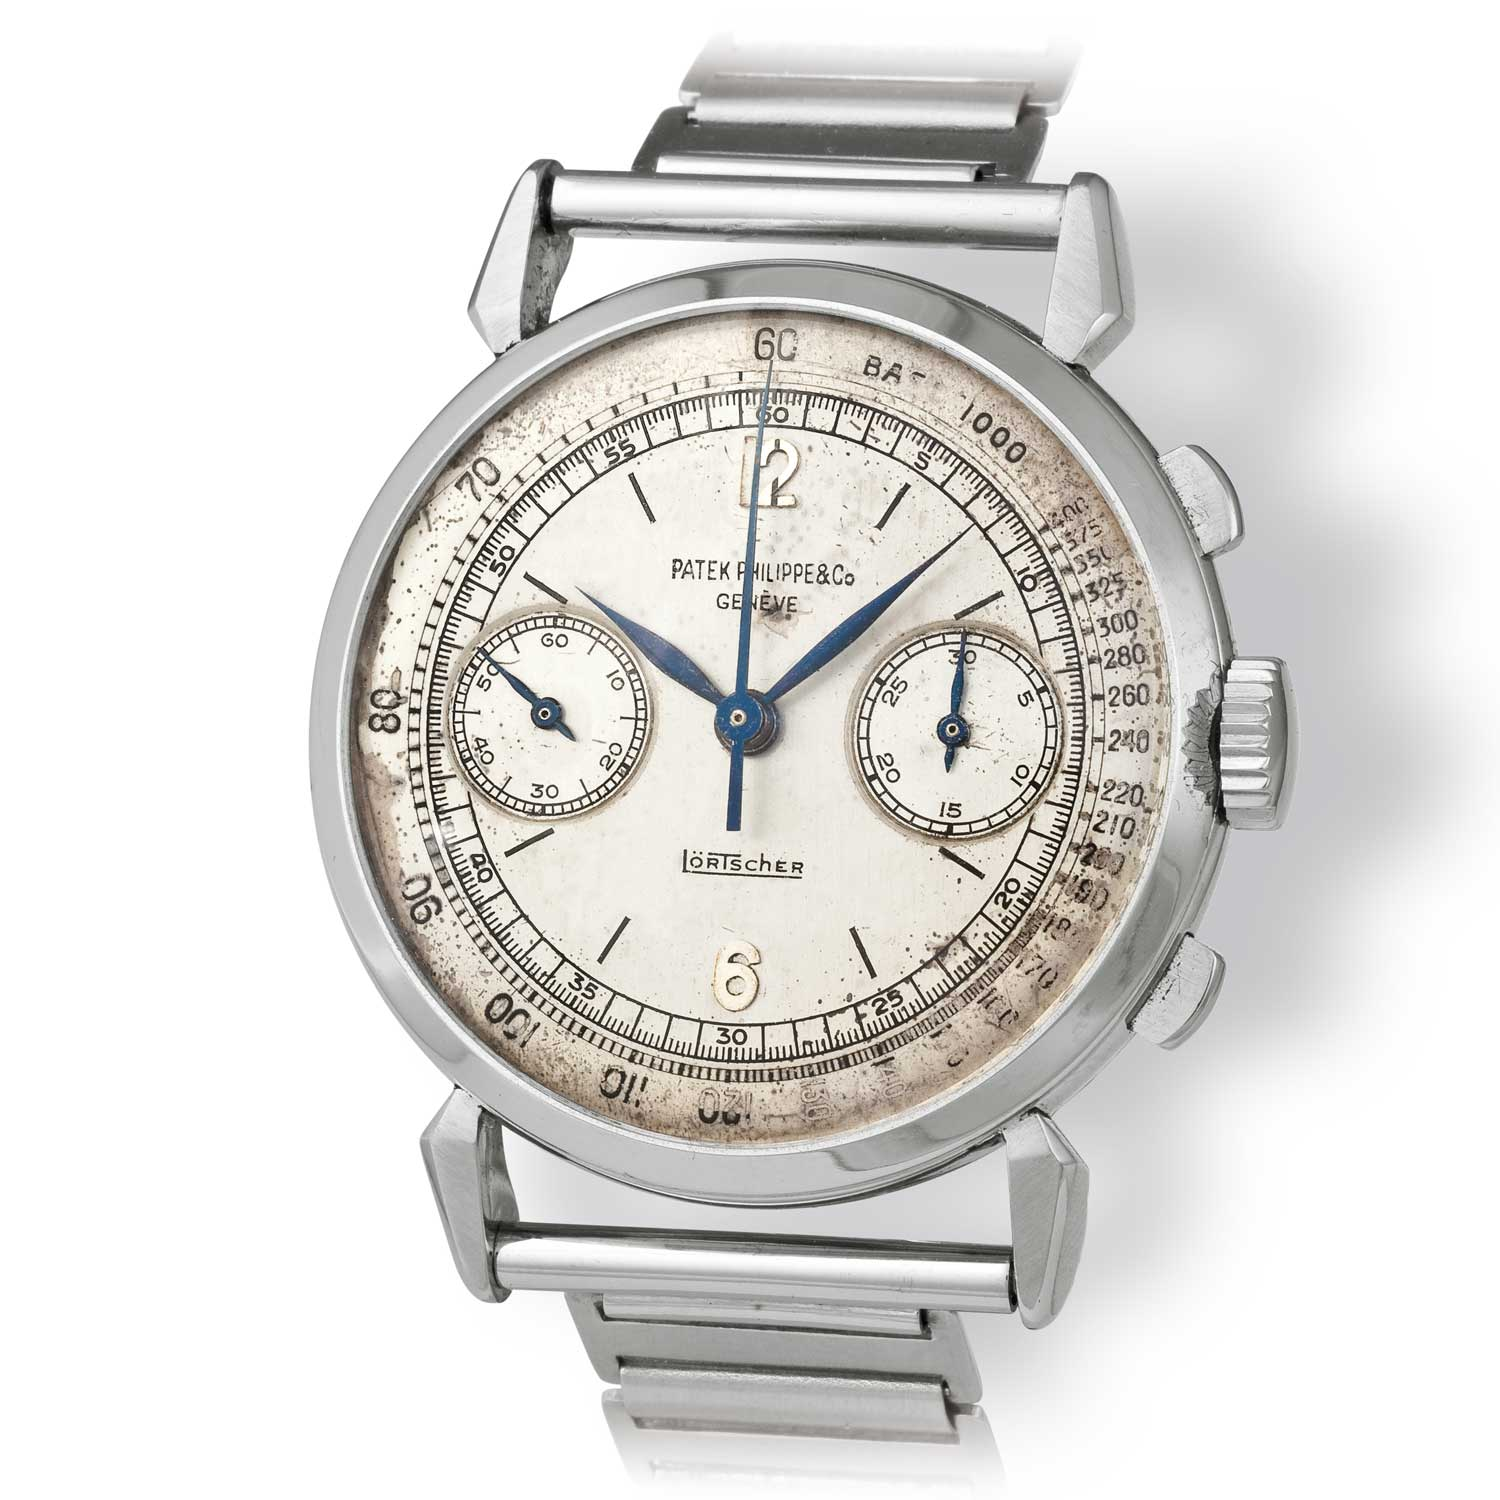 Patek Philippe ref. 1579 steel chronograph with Arabic numerals fitted on a bold Gay Frères bamboo bracelet (Image: John Goldberger)